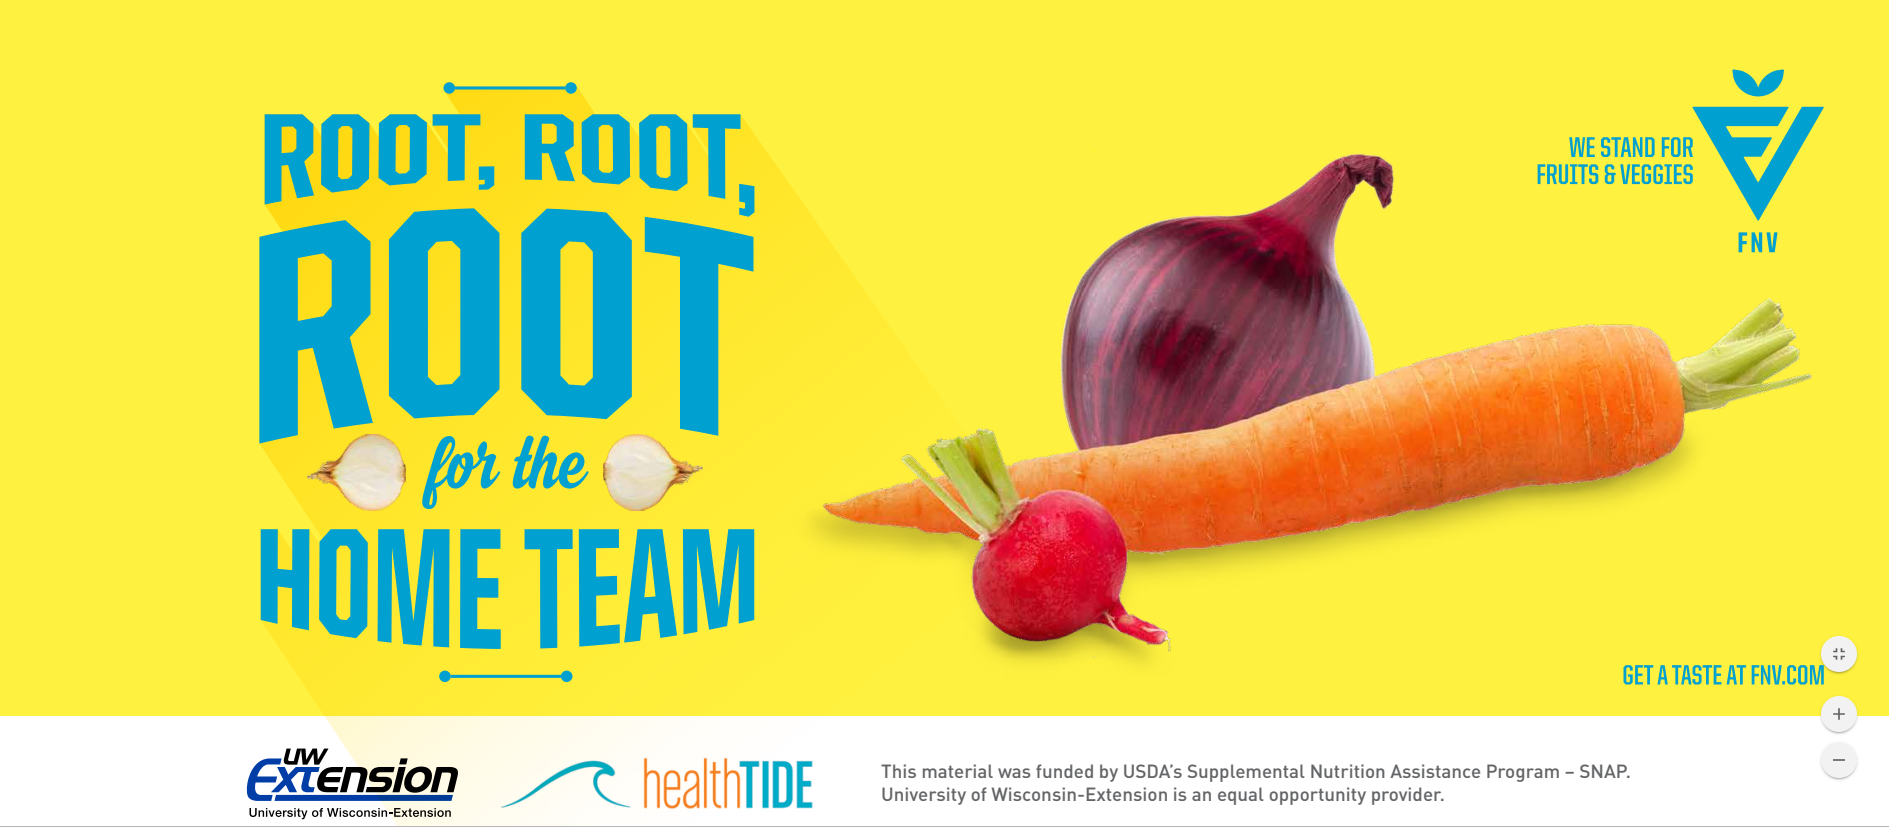 root, root, root for the home team with root veggies